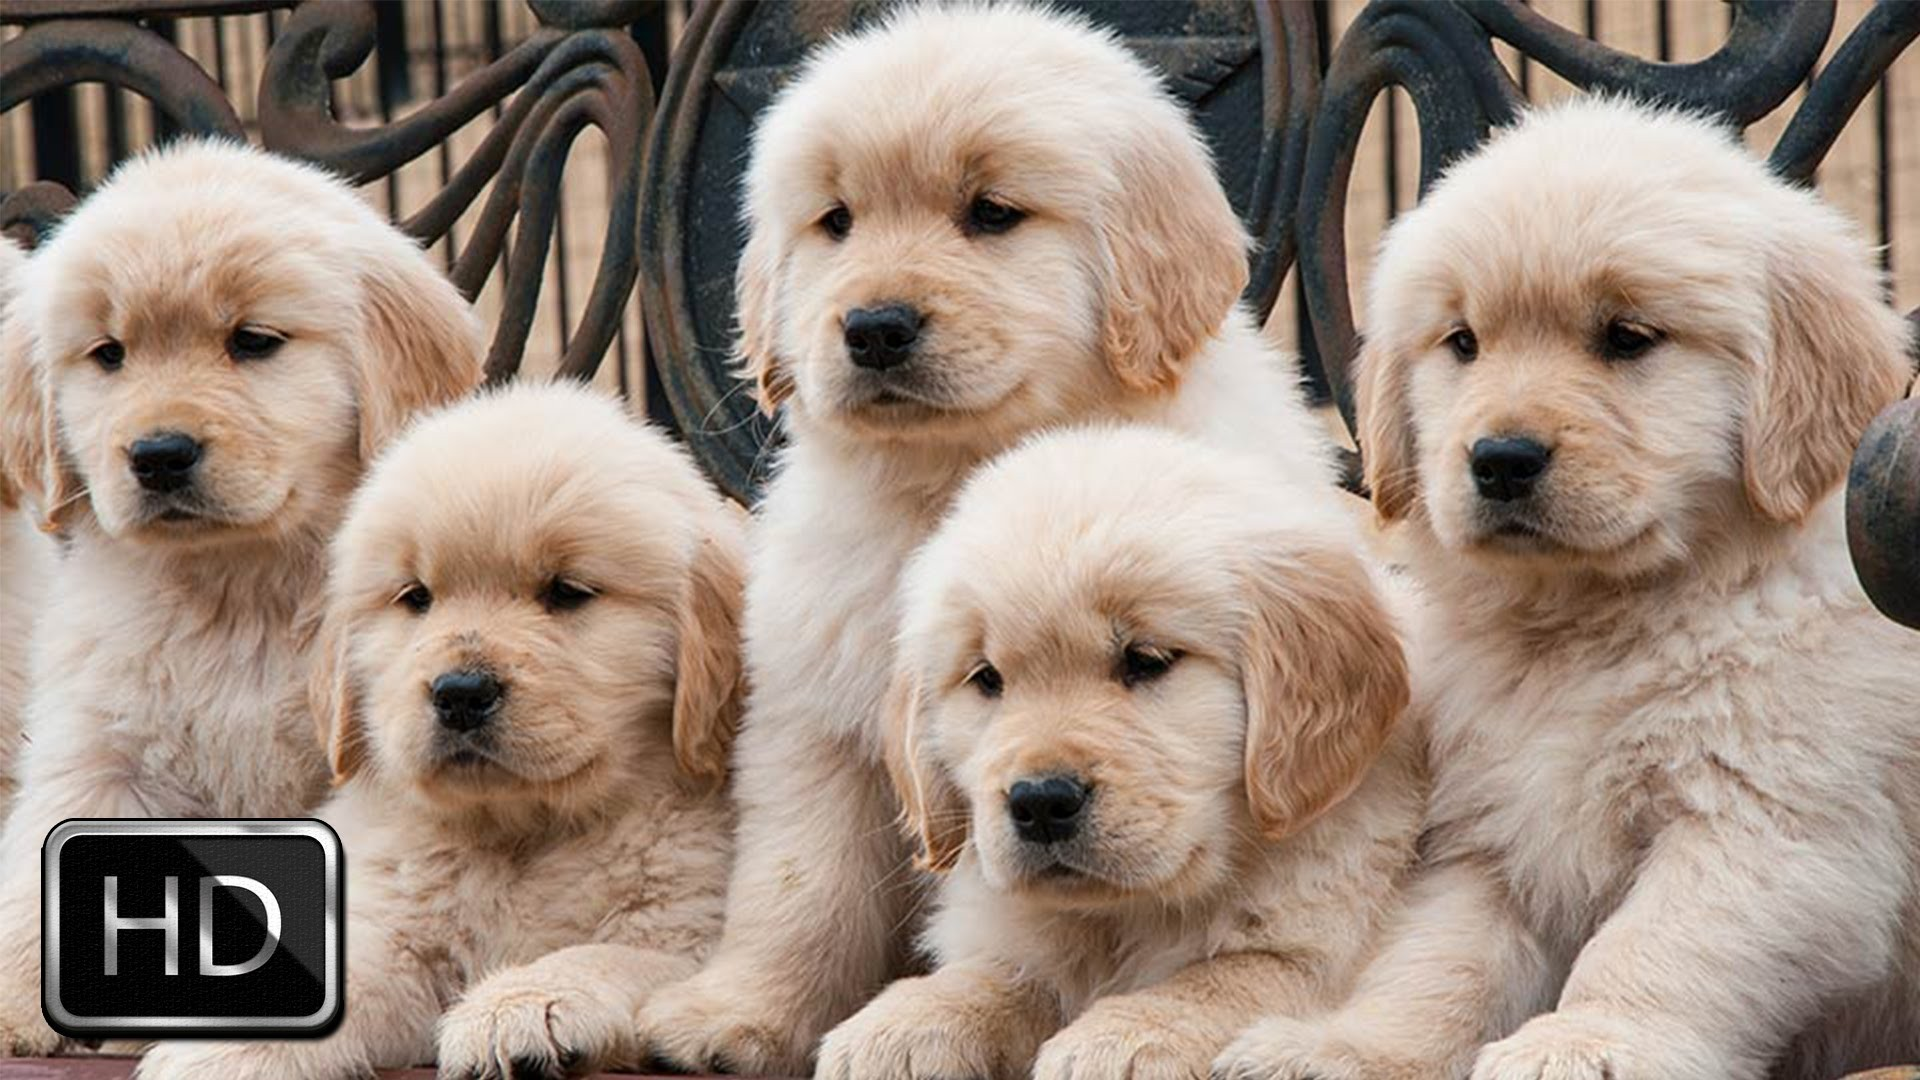 hd cute puppies backgrounds